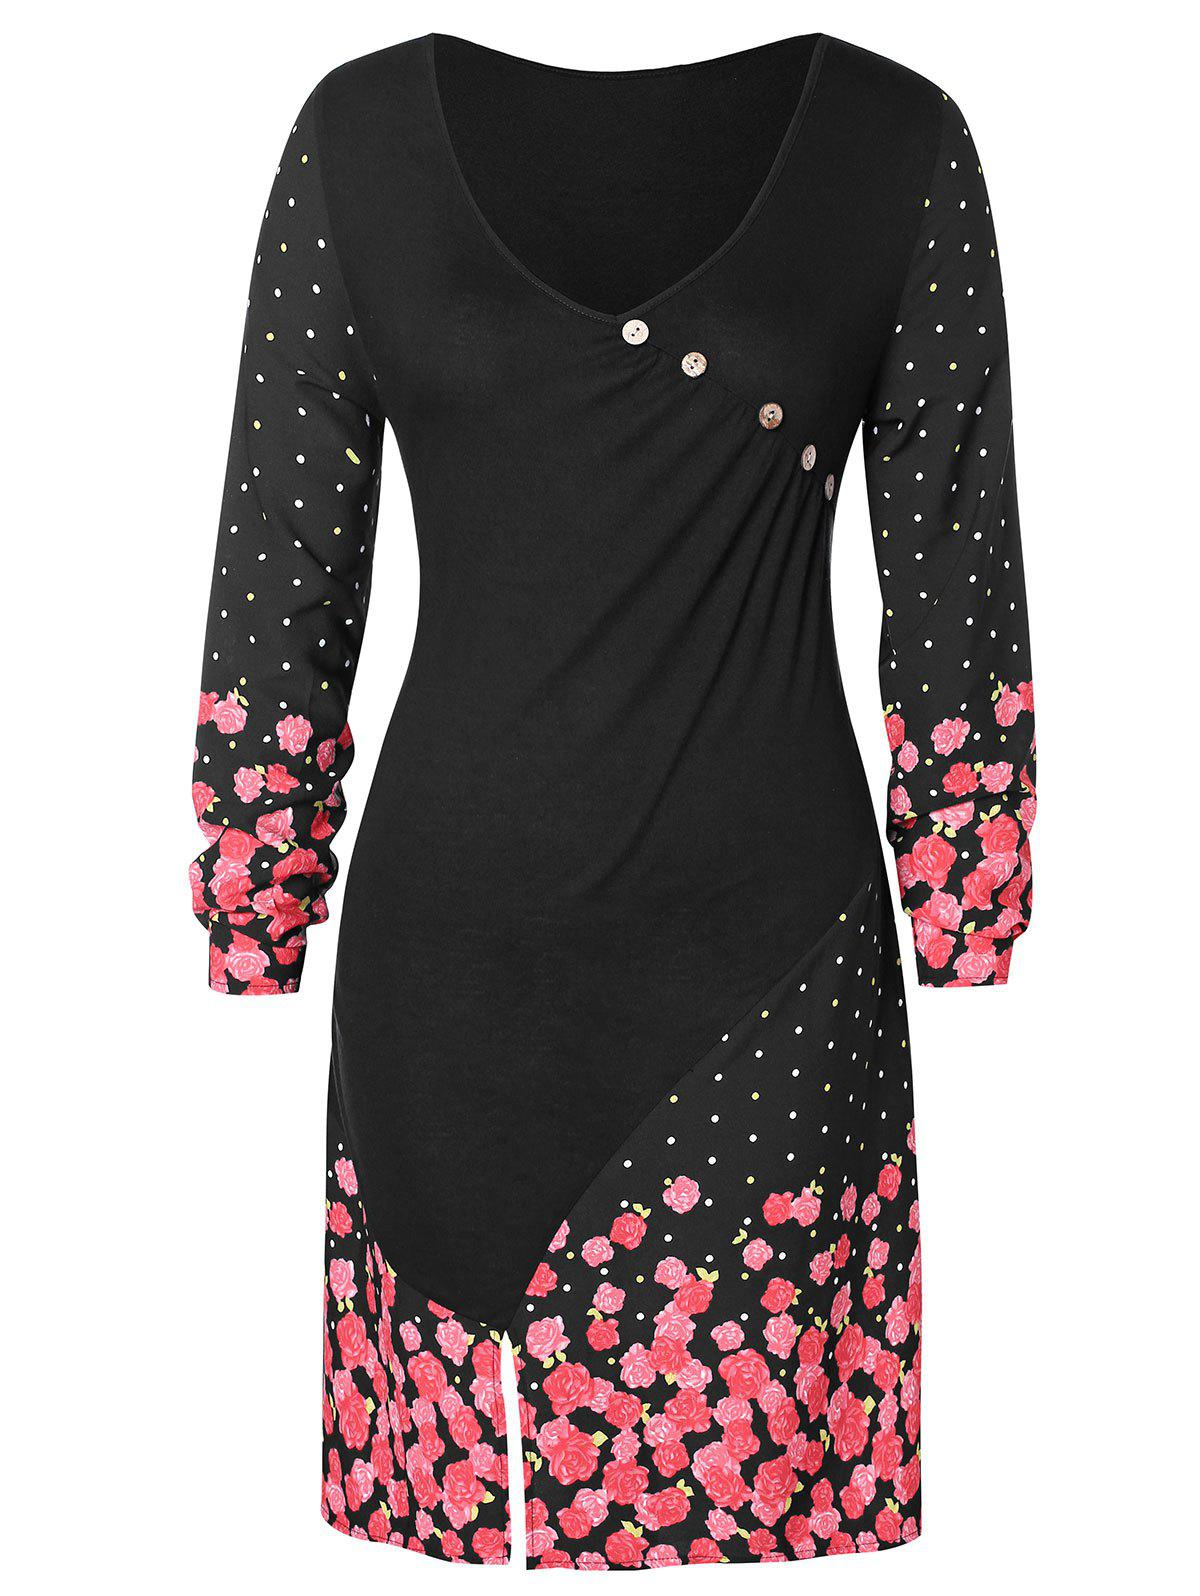 Fancy Floral Print Buttons Front Slit Plus Size Dress